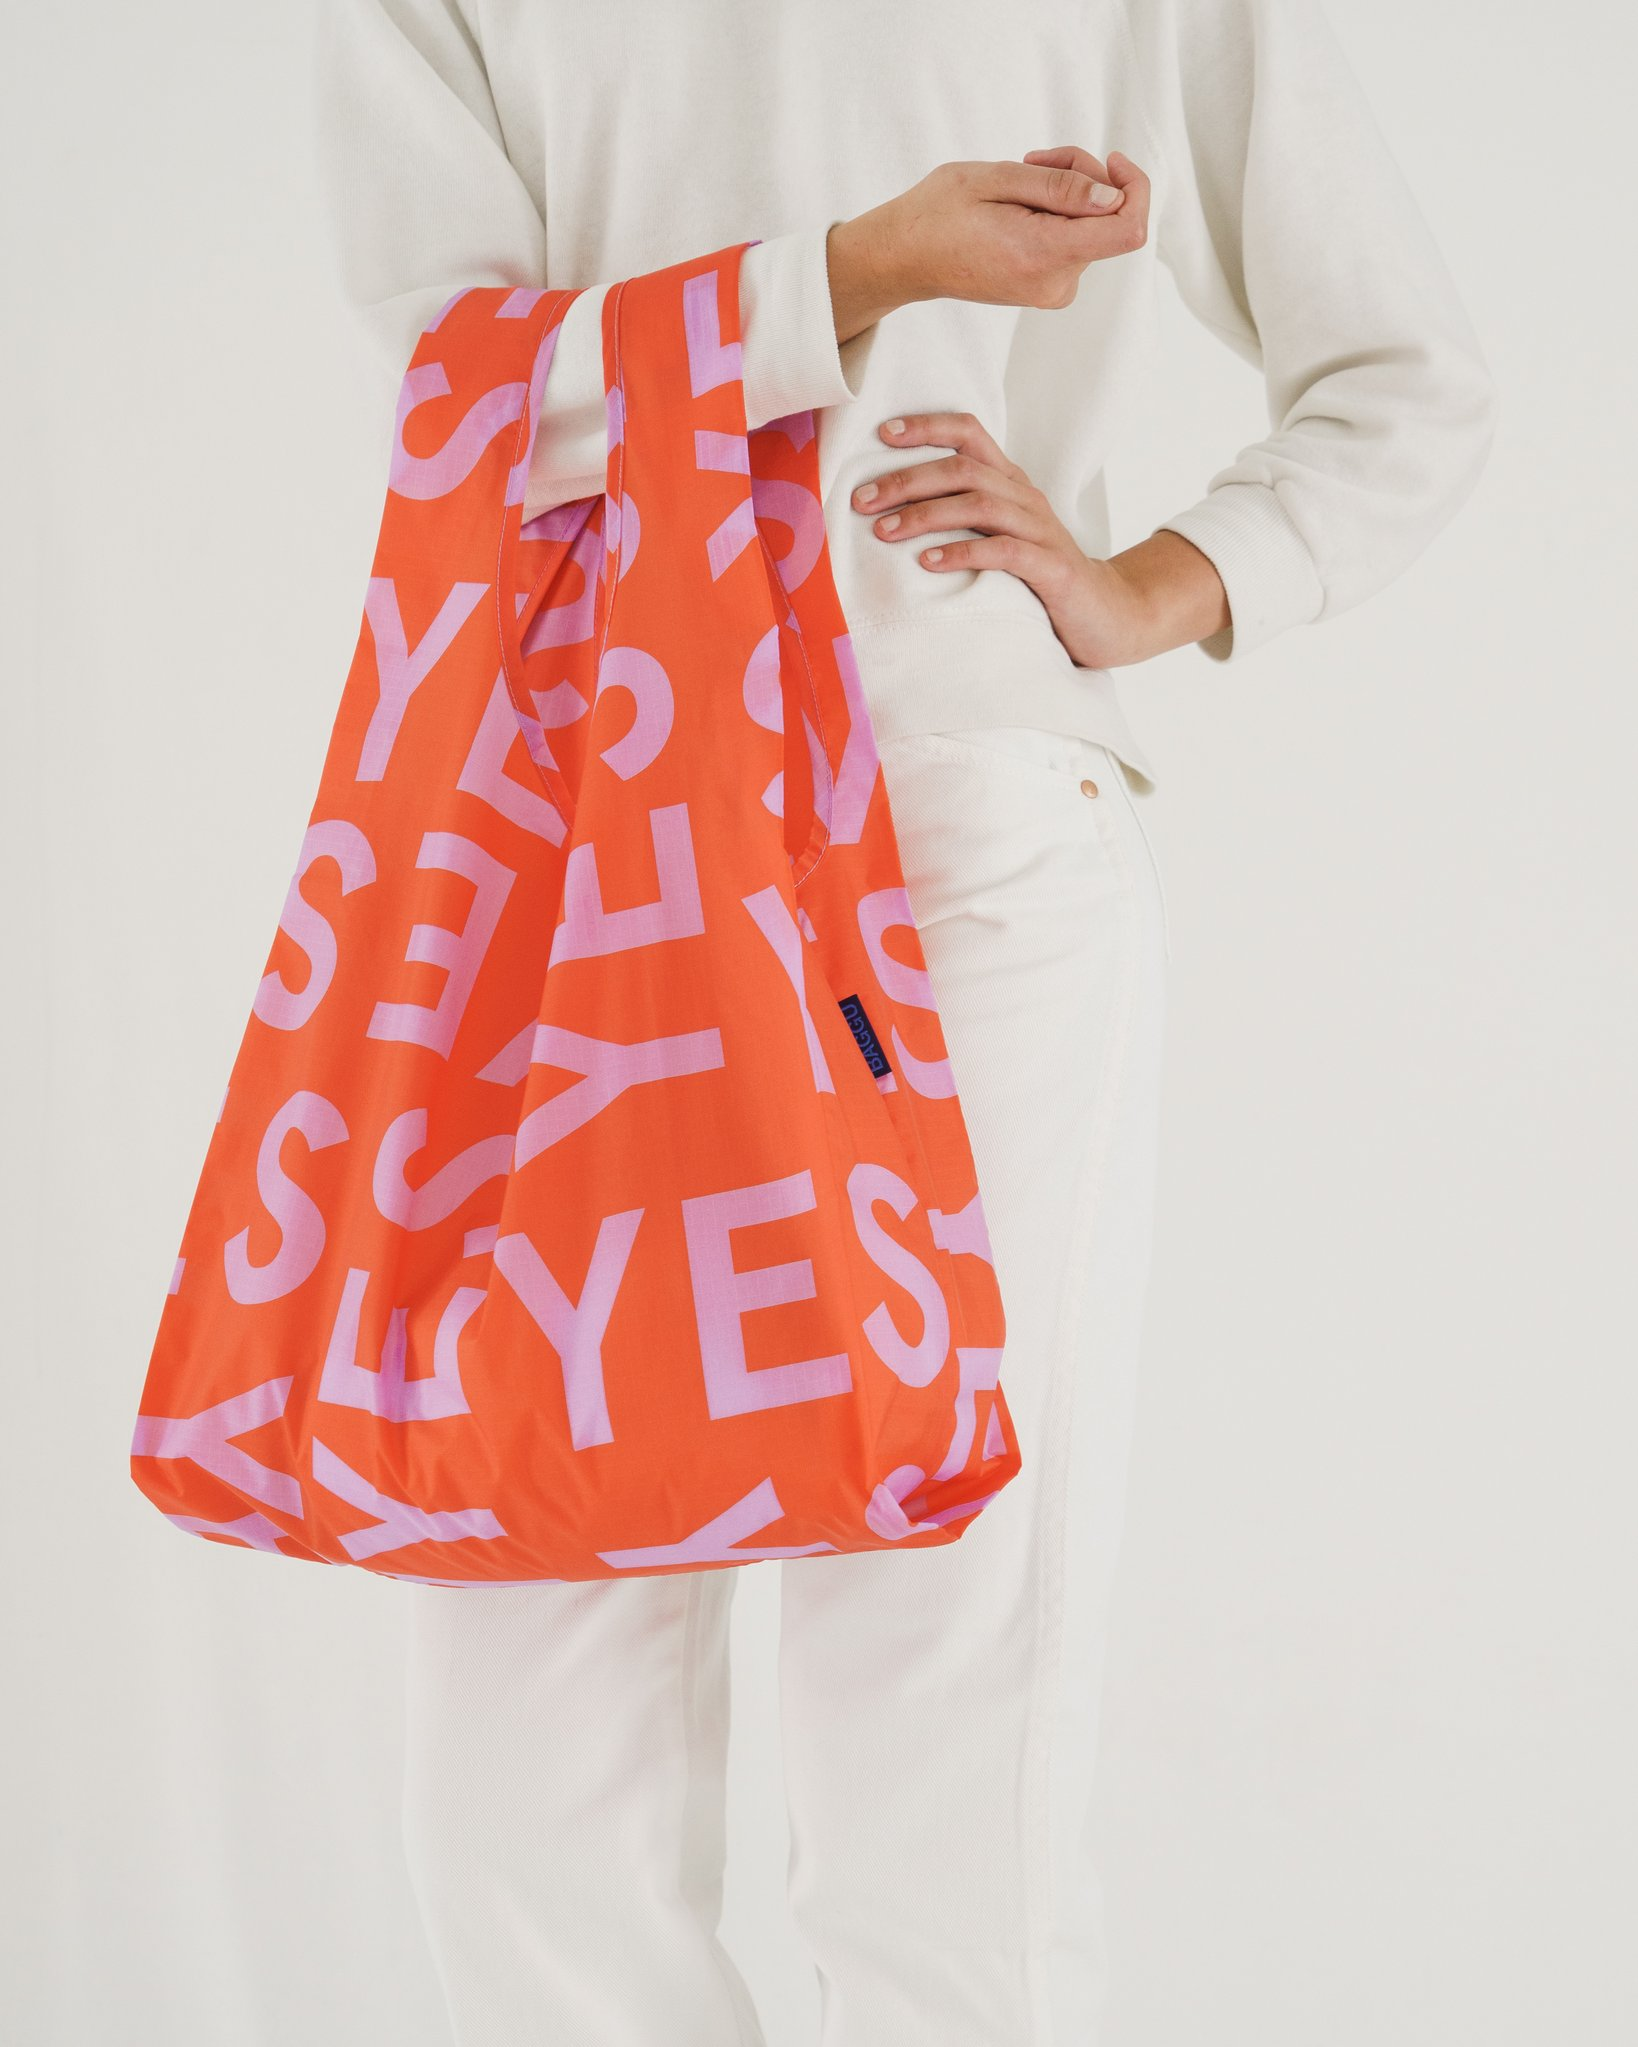 Woman in white holding reusable orange bag with the word YES on it for bridal shower favors